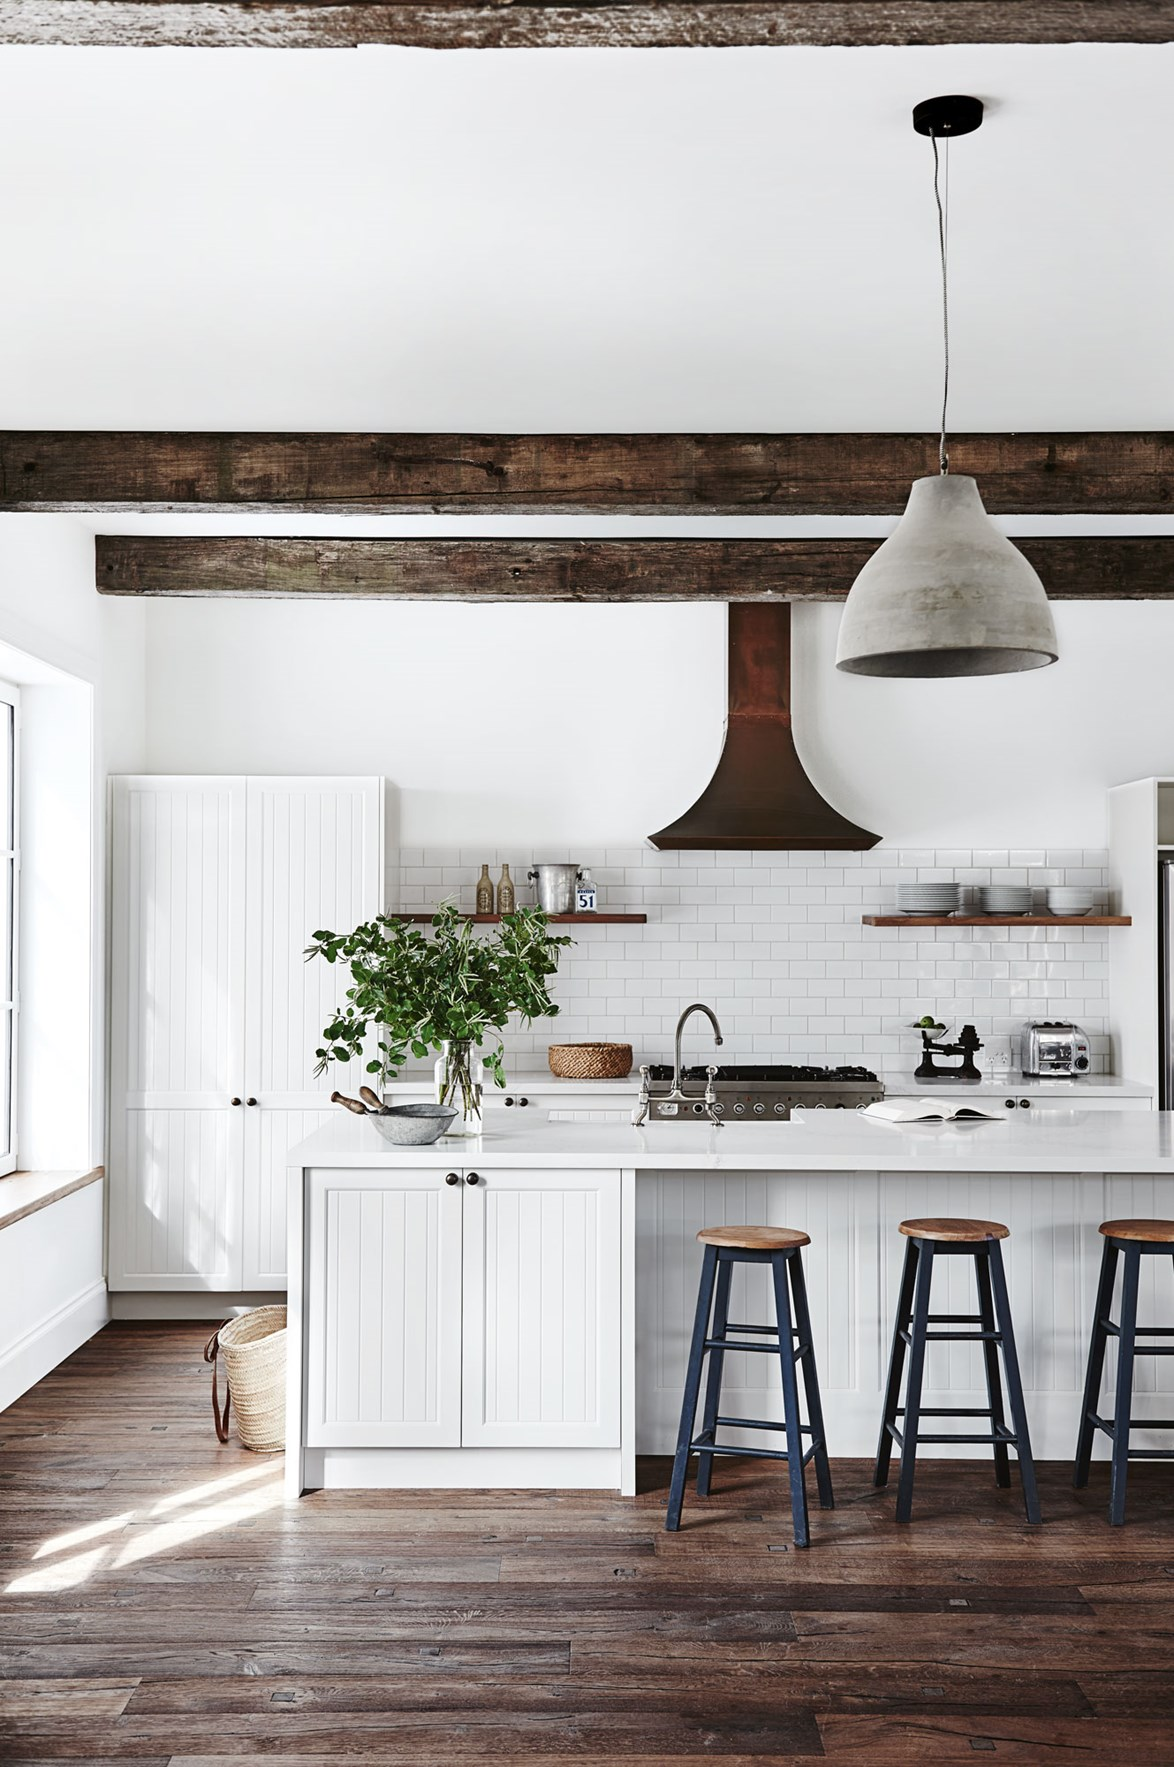 **Mix chic with rustic**<p> <p>Combining natural finishes, such as exposed beams and timber shelving with crisp white cabinetry provides the perfect balance of old and new.<p> <p>*Photo: Jessie Prince*<p>